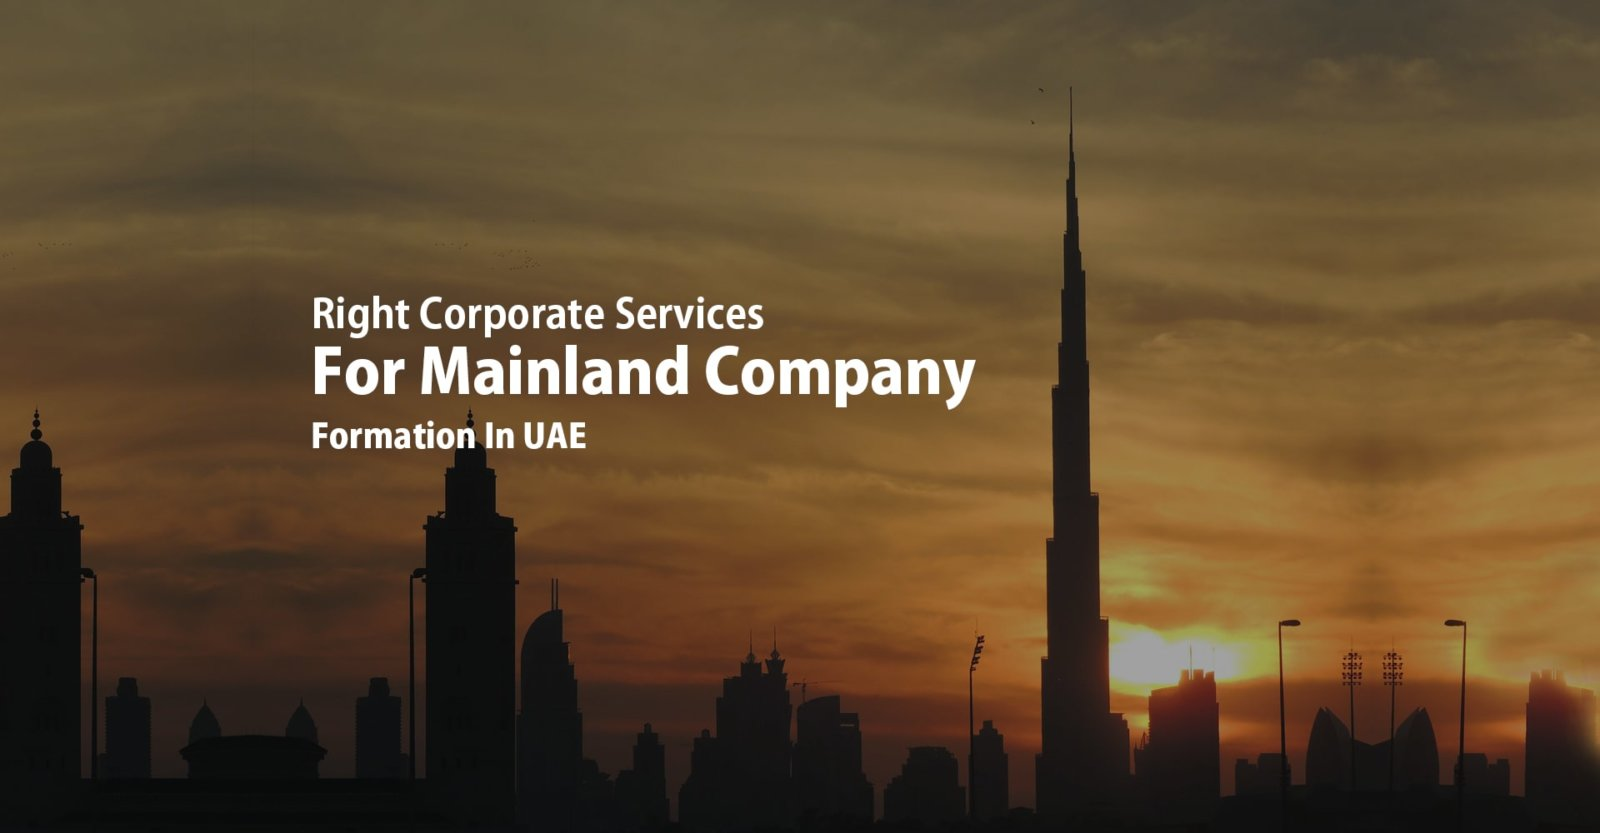 Right Corporate Services Mainland company Formation in UAE